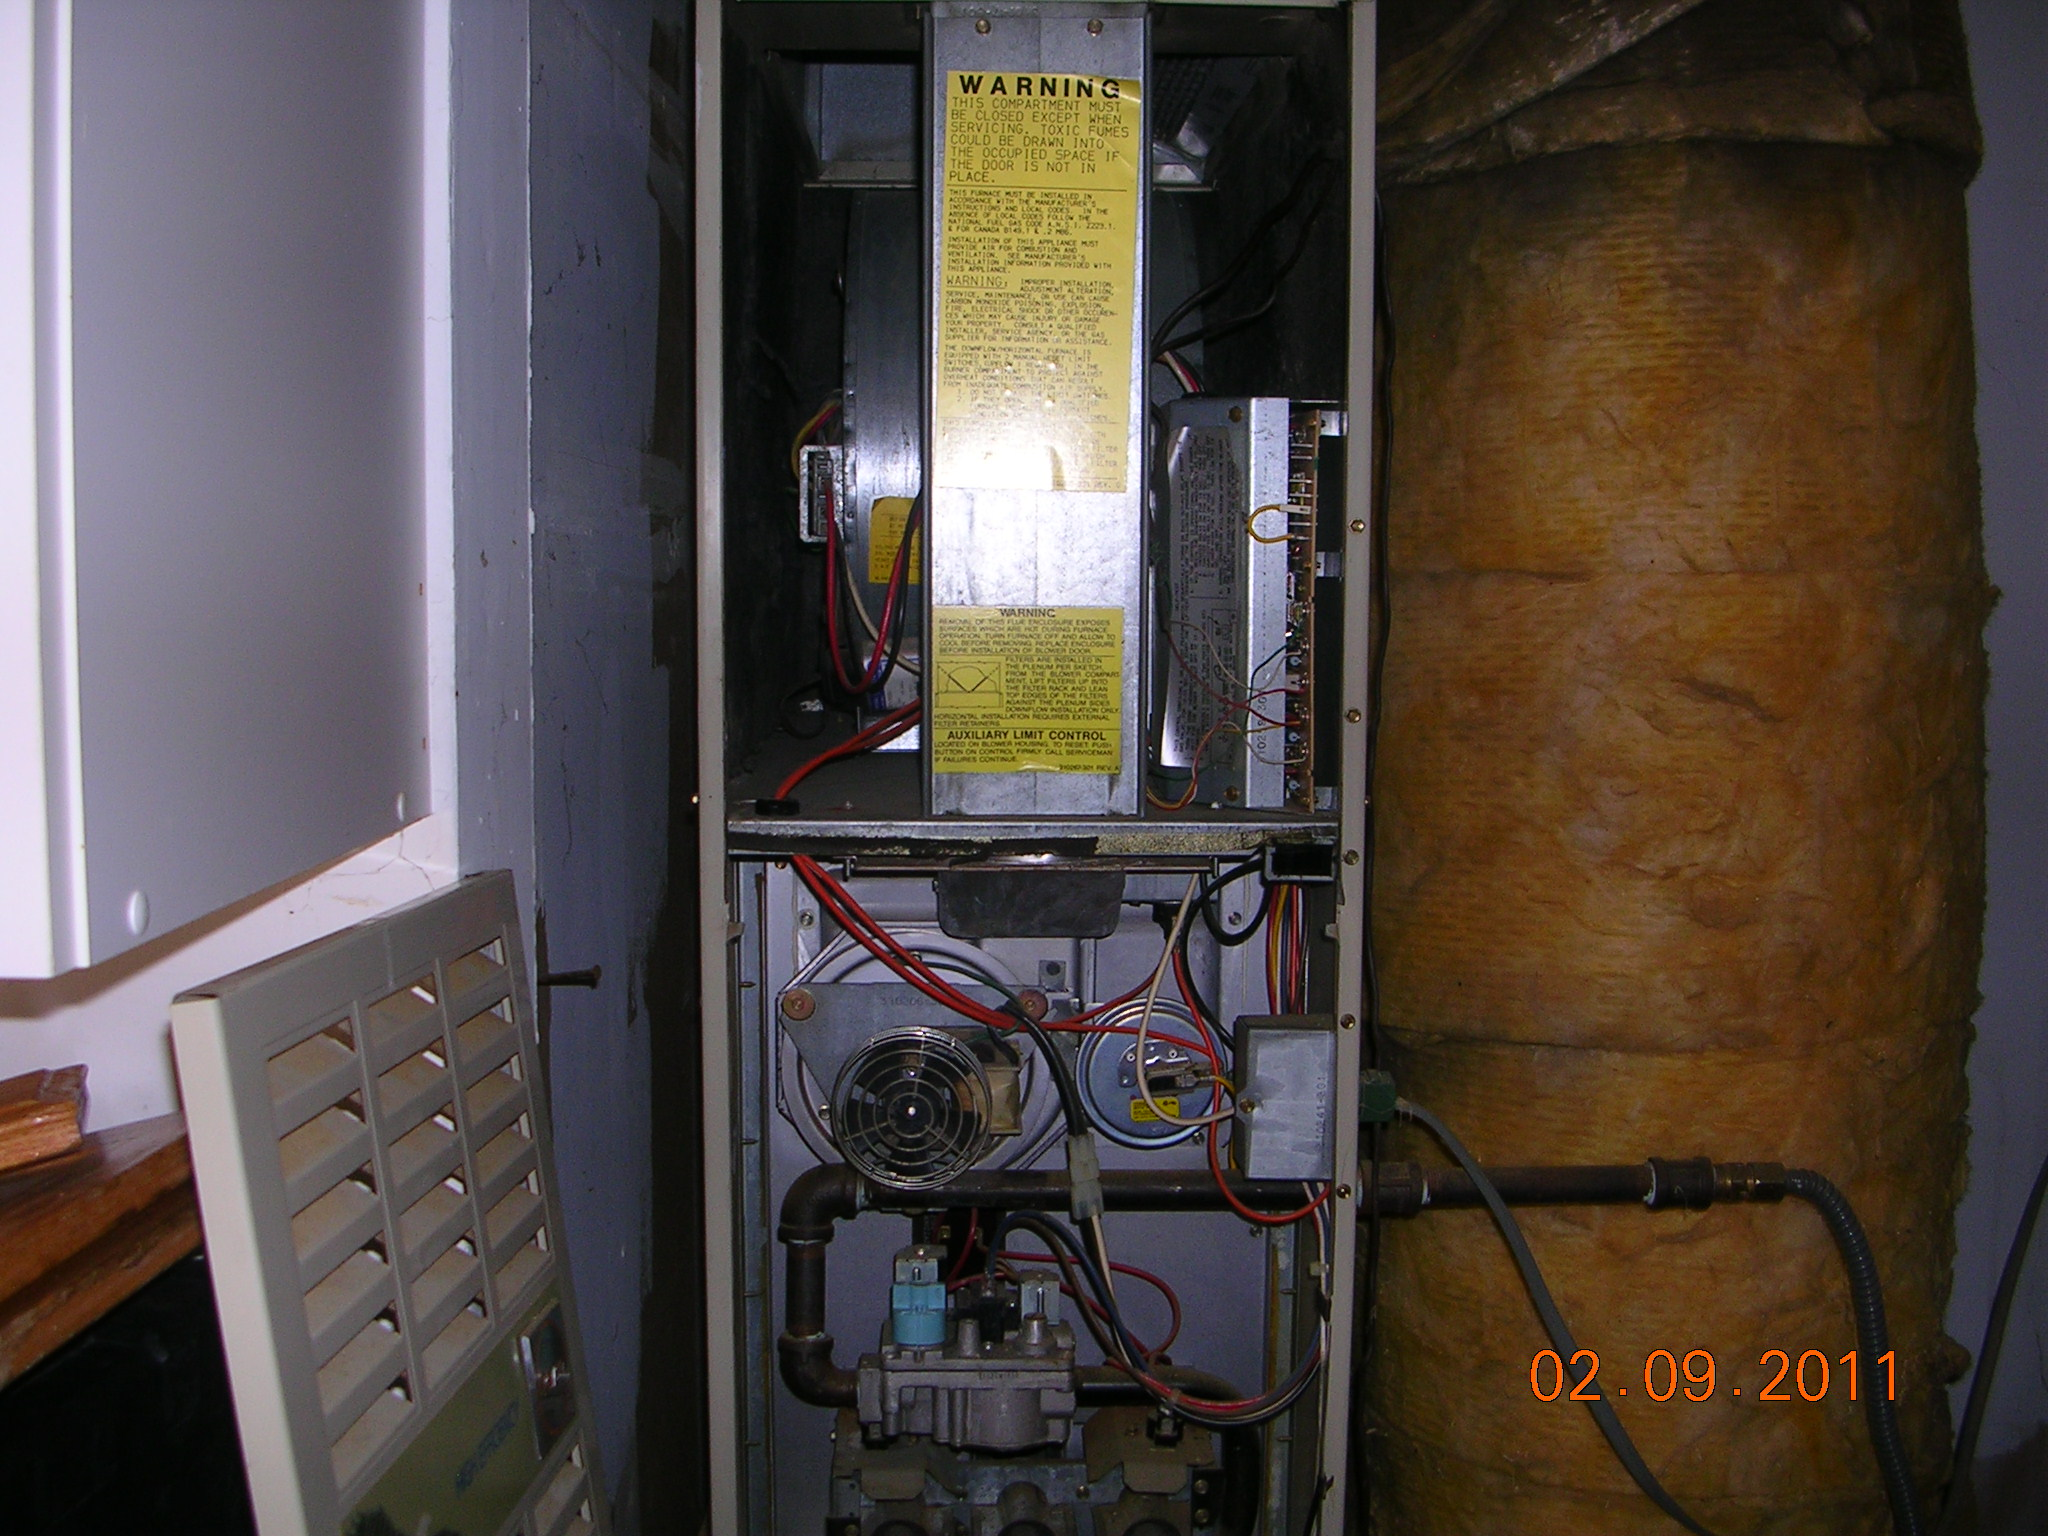 payne furnace wiring diagram electric dryer i have a high efficiency from 1991 and the